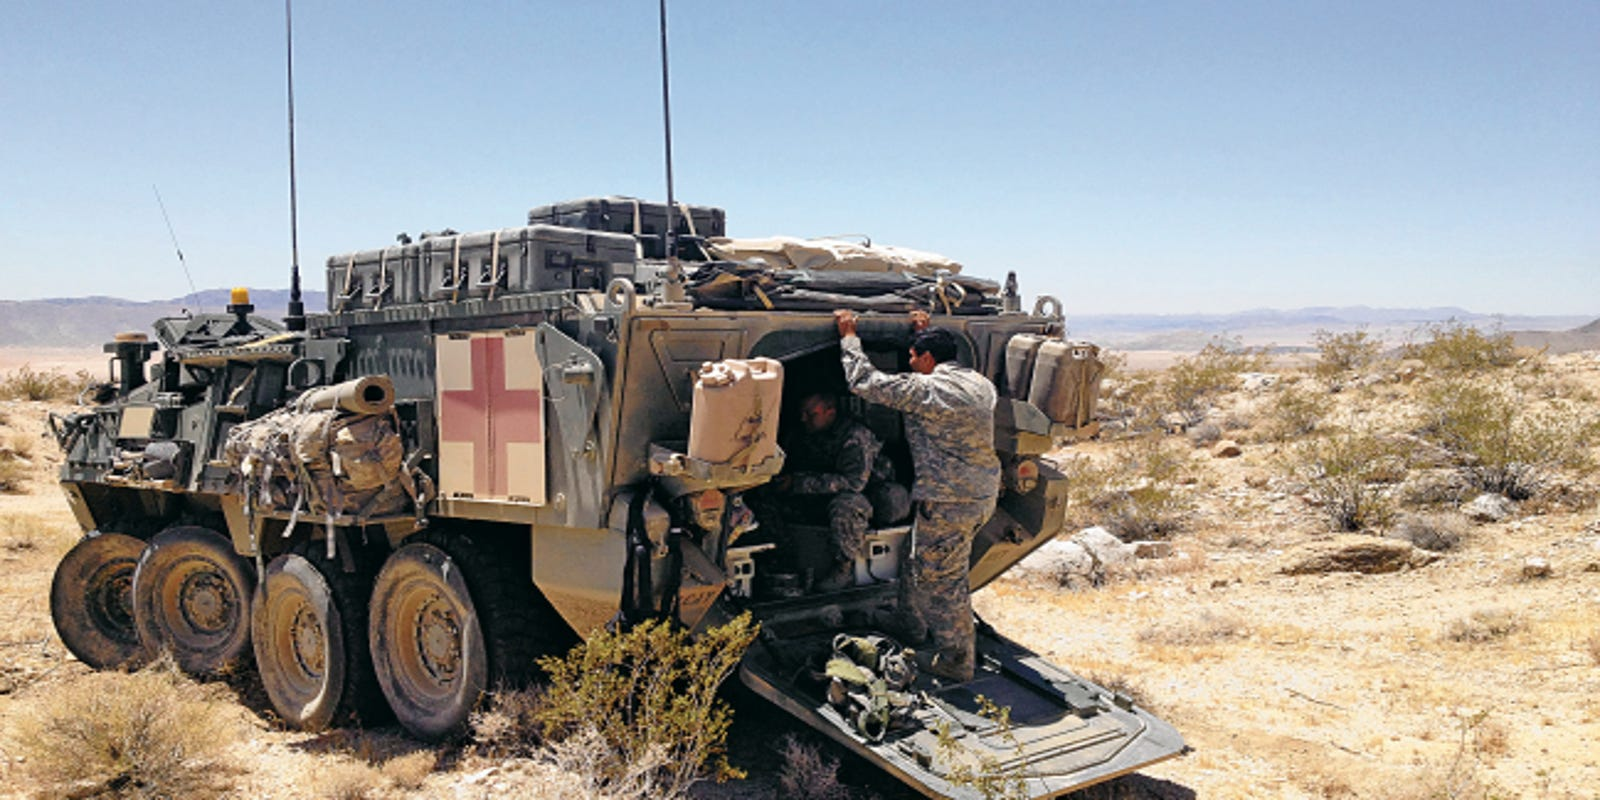 Spartan existence: Cavalry scouts get few luxuries, comforts